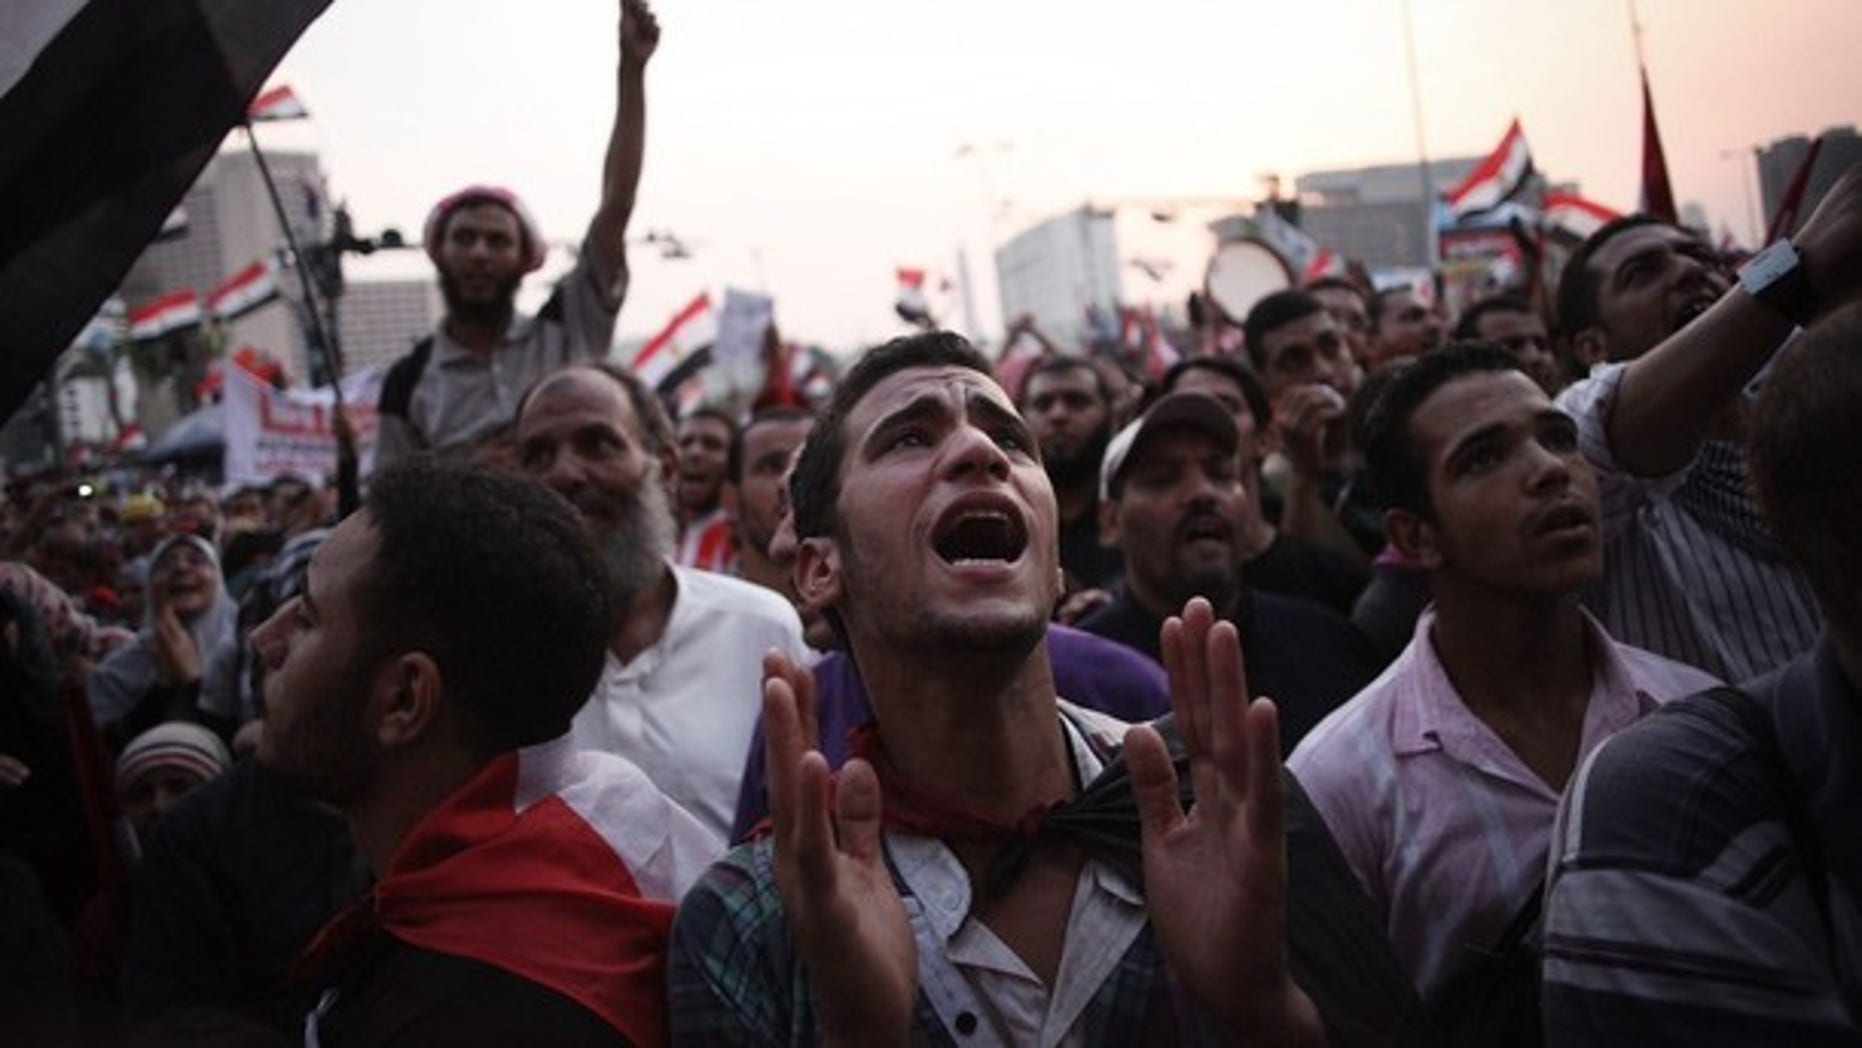 June 23, 2012: Egyptian protesters shout slogans in Tahrir Square as the country awaits the outcome of a presidential runoff vote.